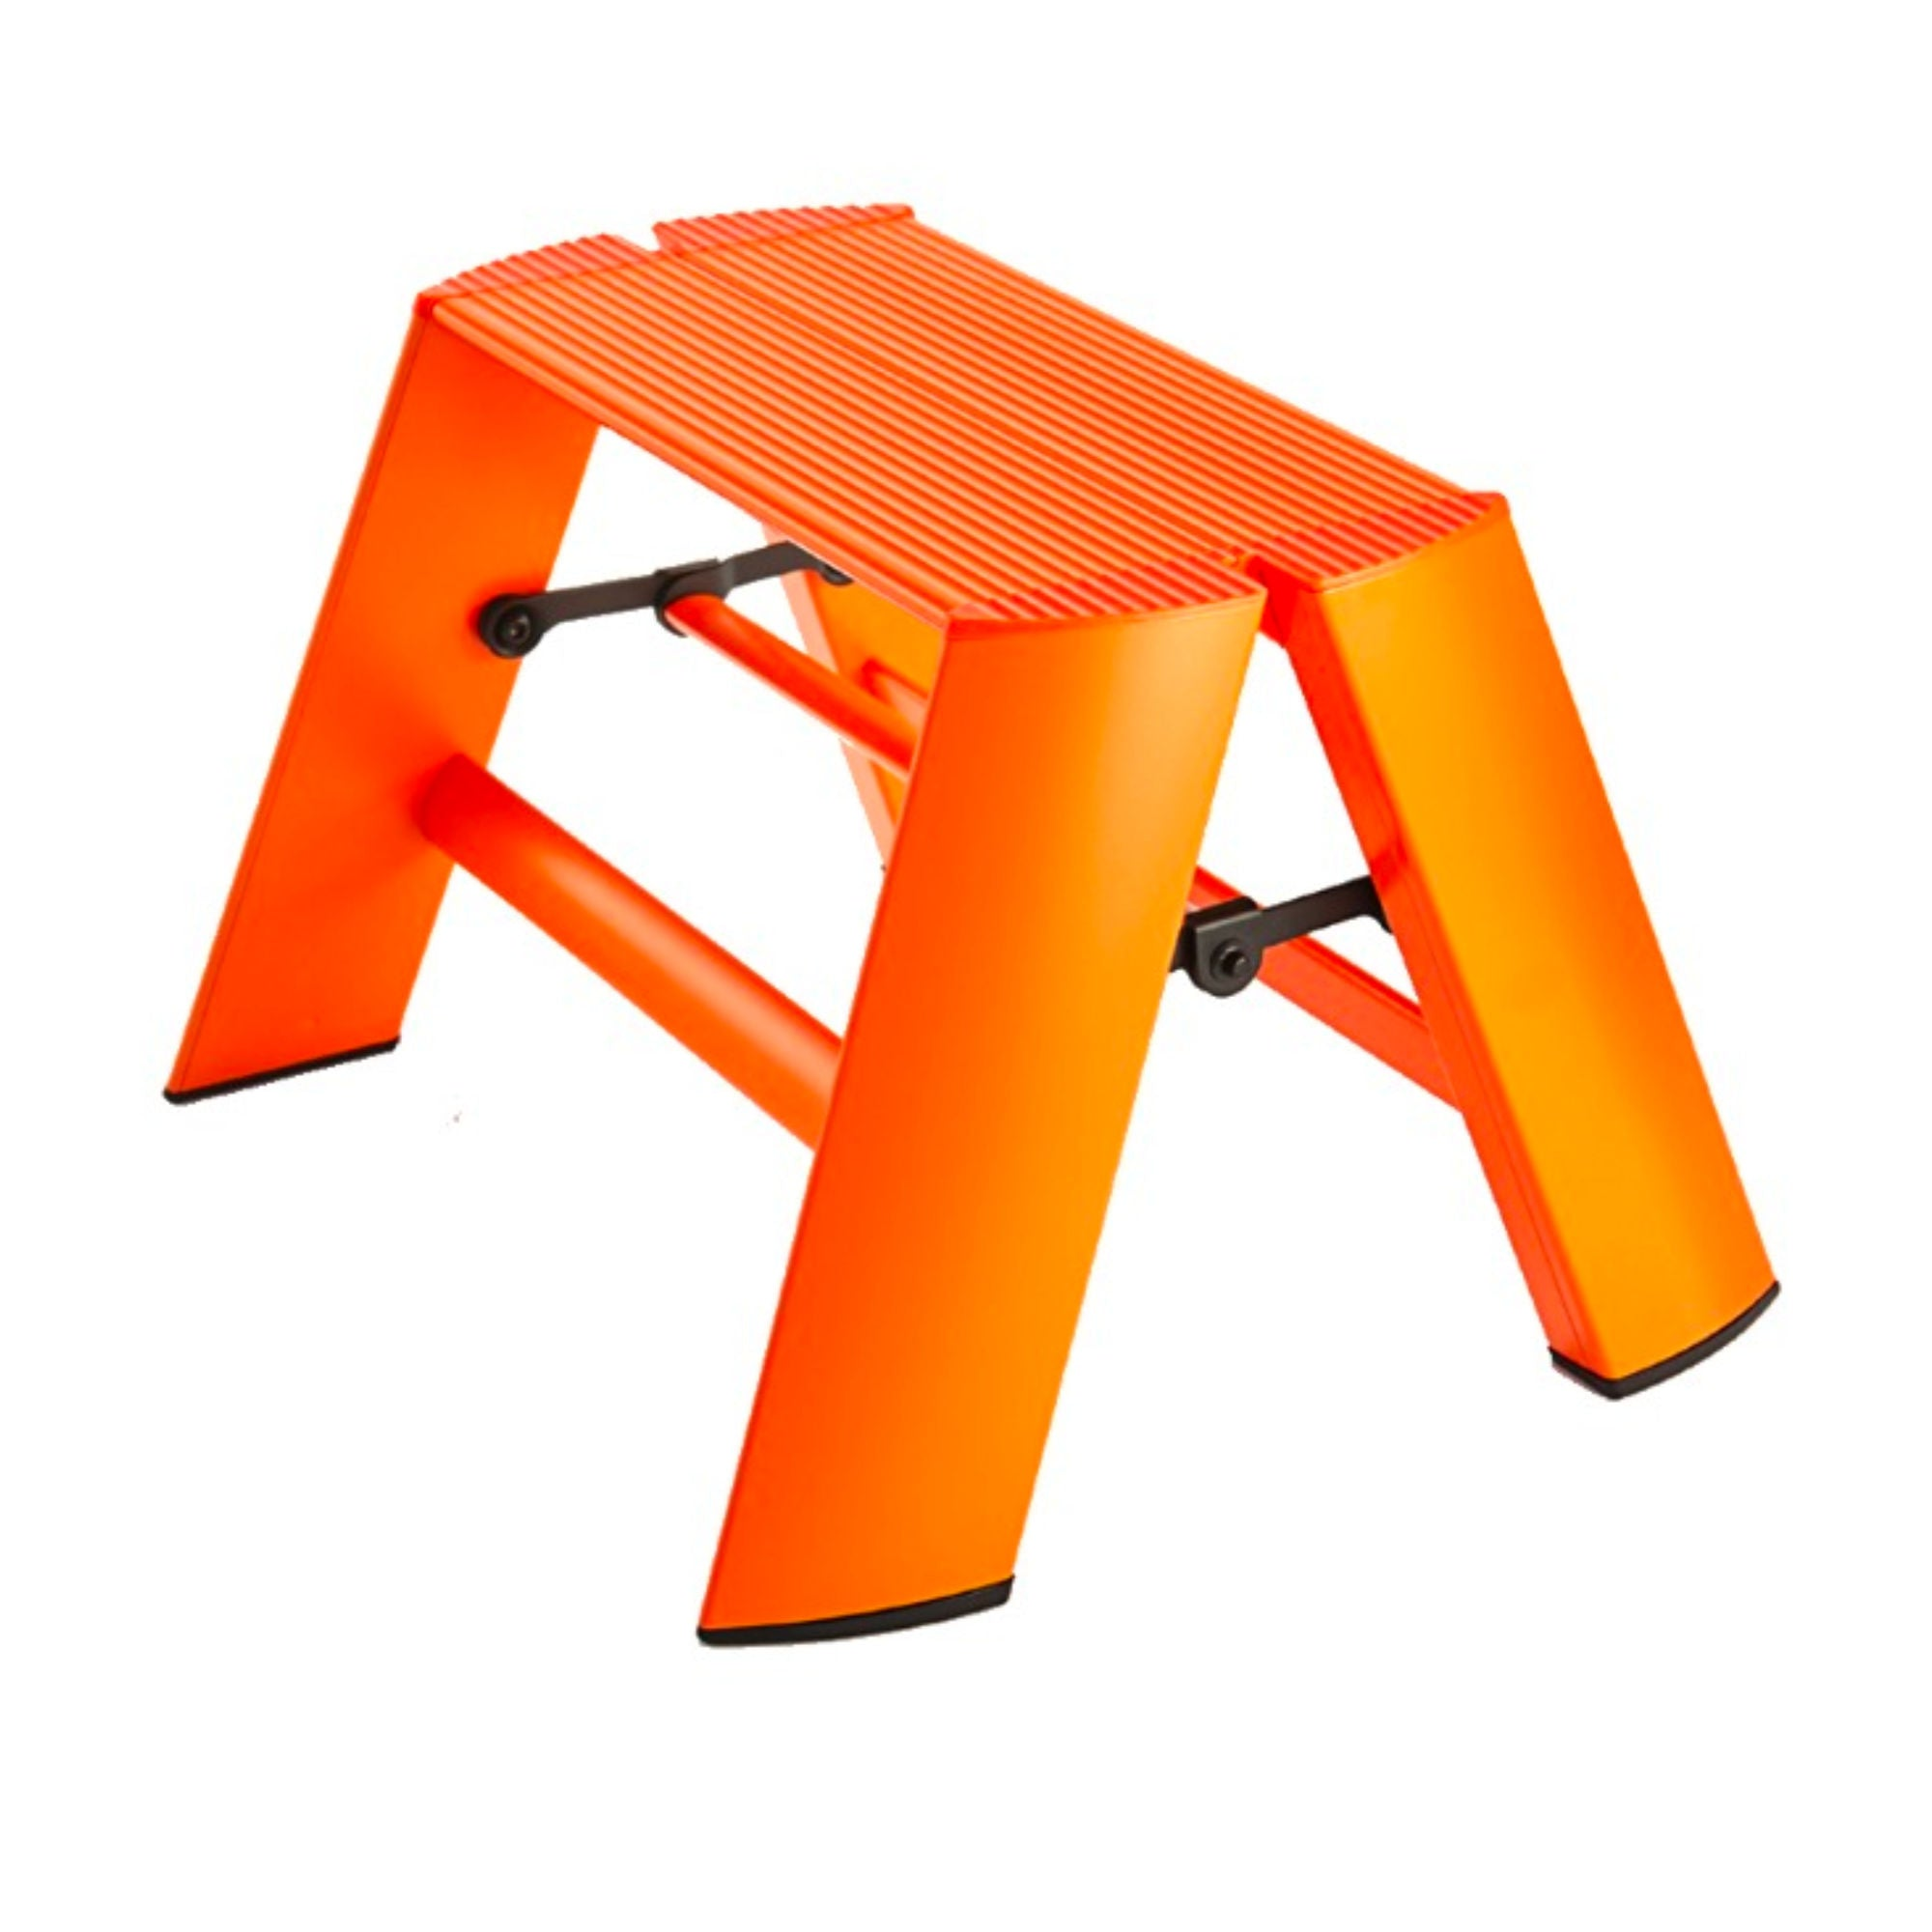 Metaphys Lucano Step Ladder 1 Step, Orange